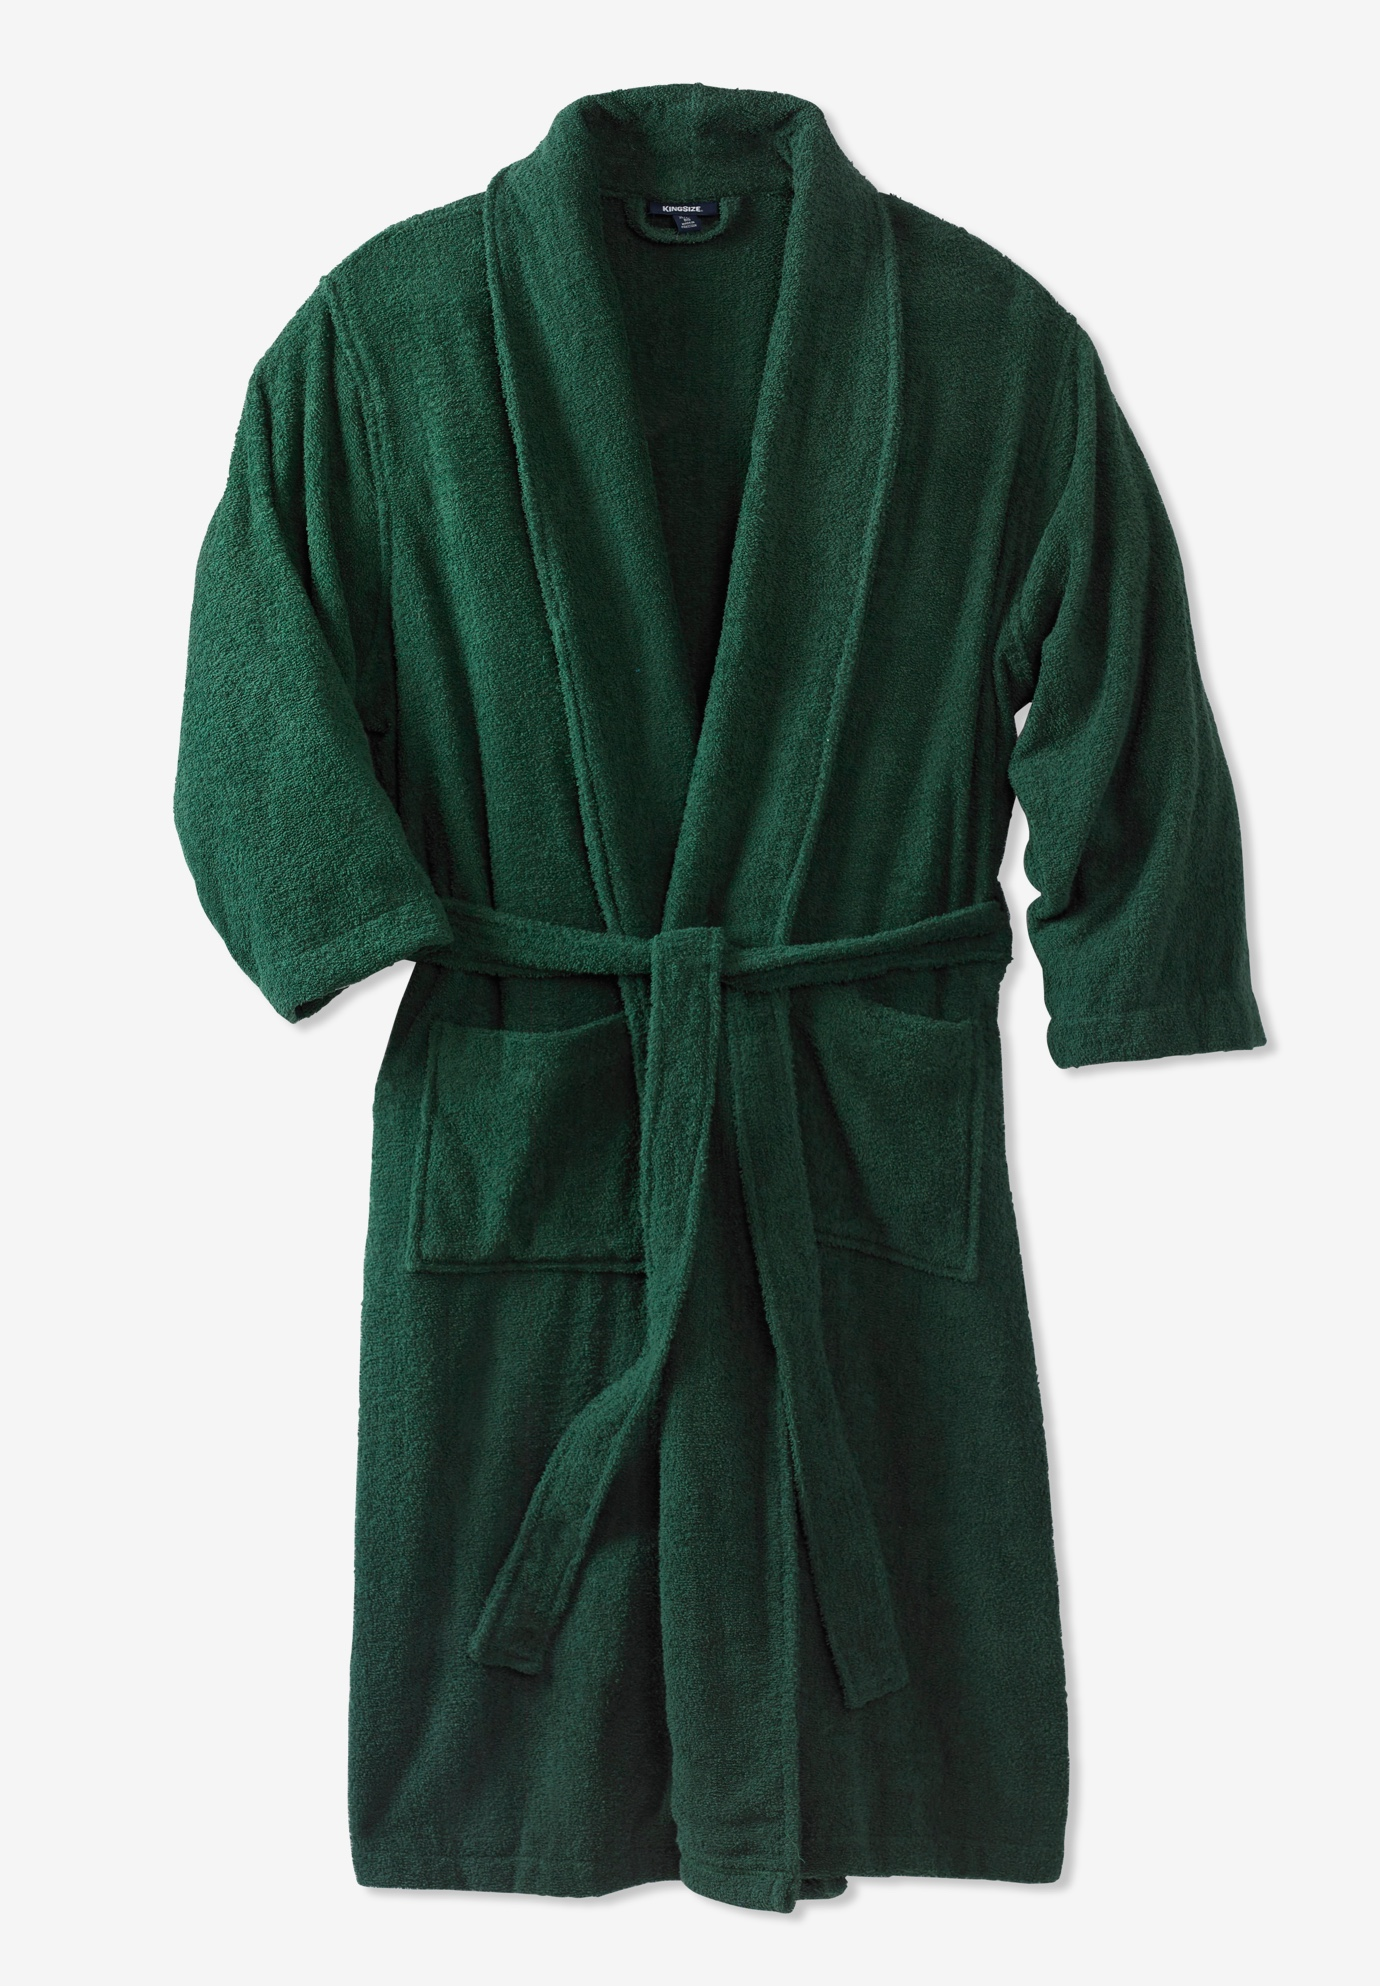 Terry Bathrobe with Pockets  64c832961